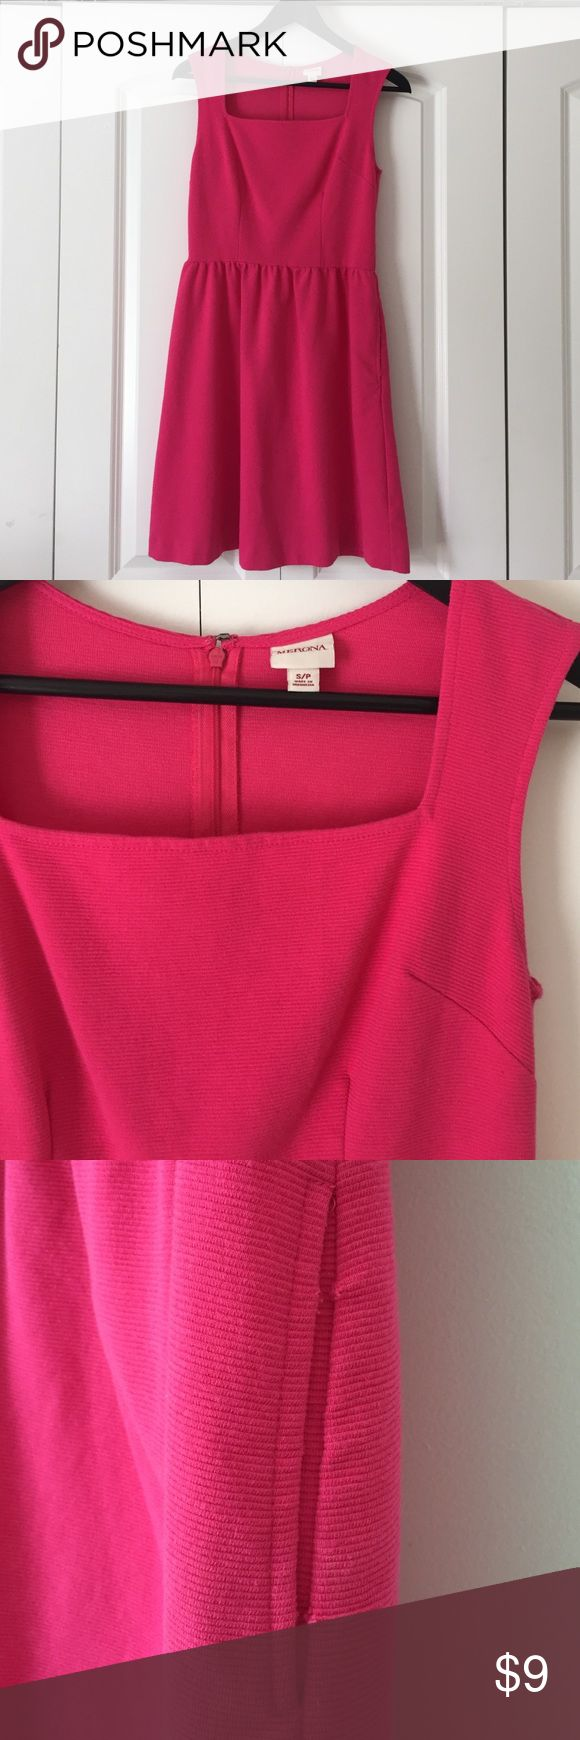 HOT Pink Merona Square Neck Dress Size Small Worn once! Got on clearance at Target last February for Valentine's Day! Perfect date night dress! Cinches at waist, ribbed material all throughout. Two pockets. Left pocket has some loose stitches. Dress is crazy comfy. Merona Dresses Asymmetrical